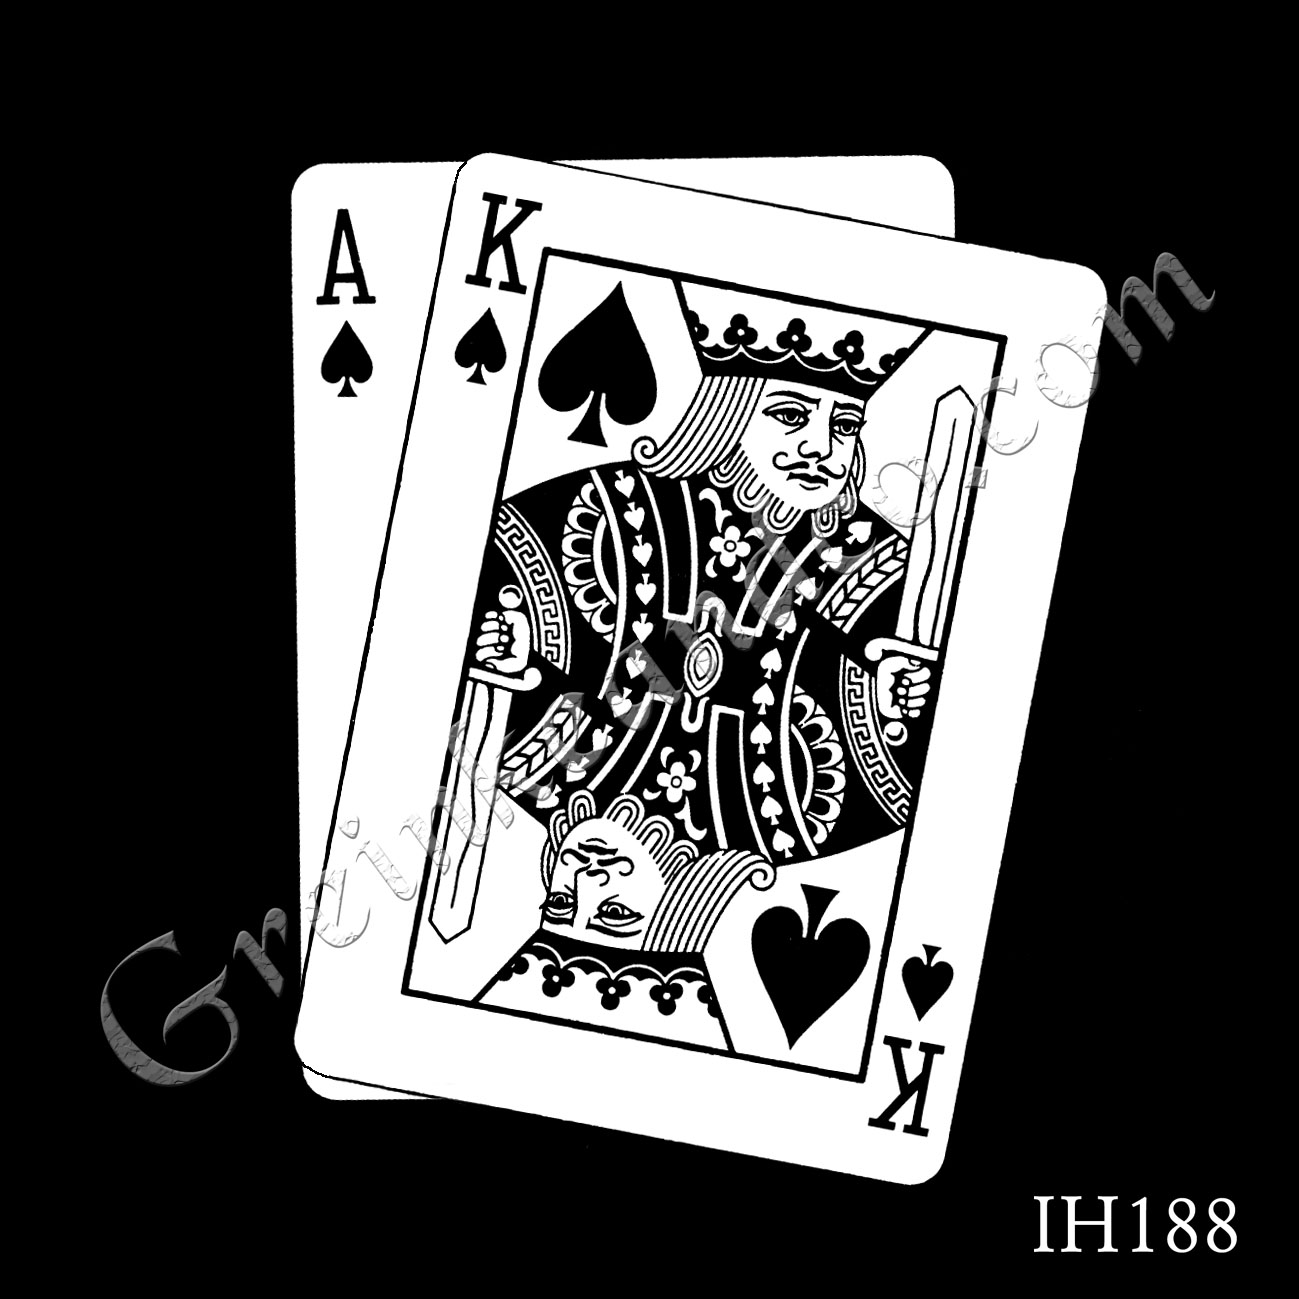 ace and king of spades cards